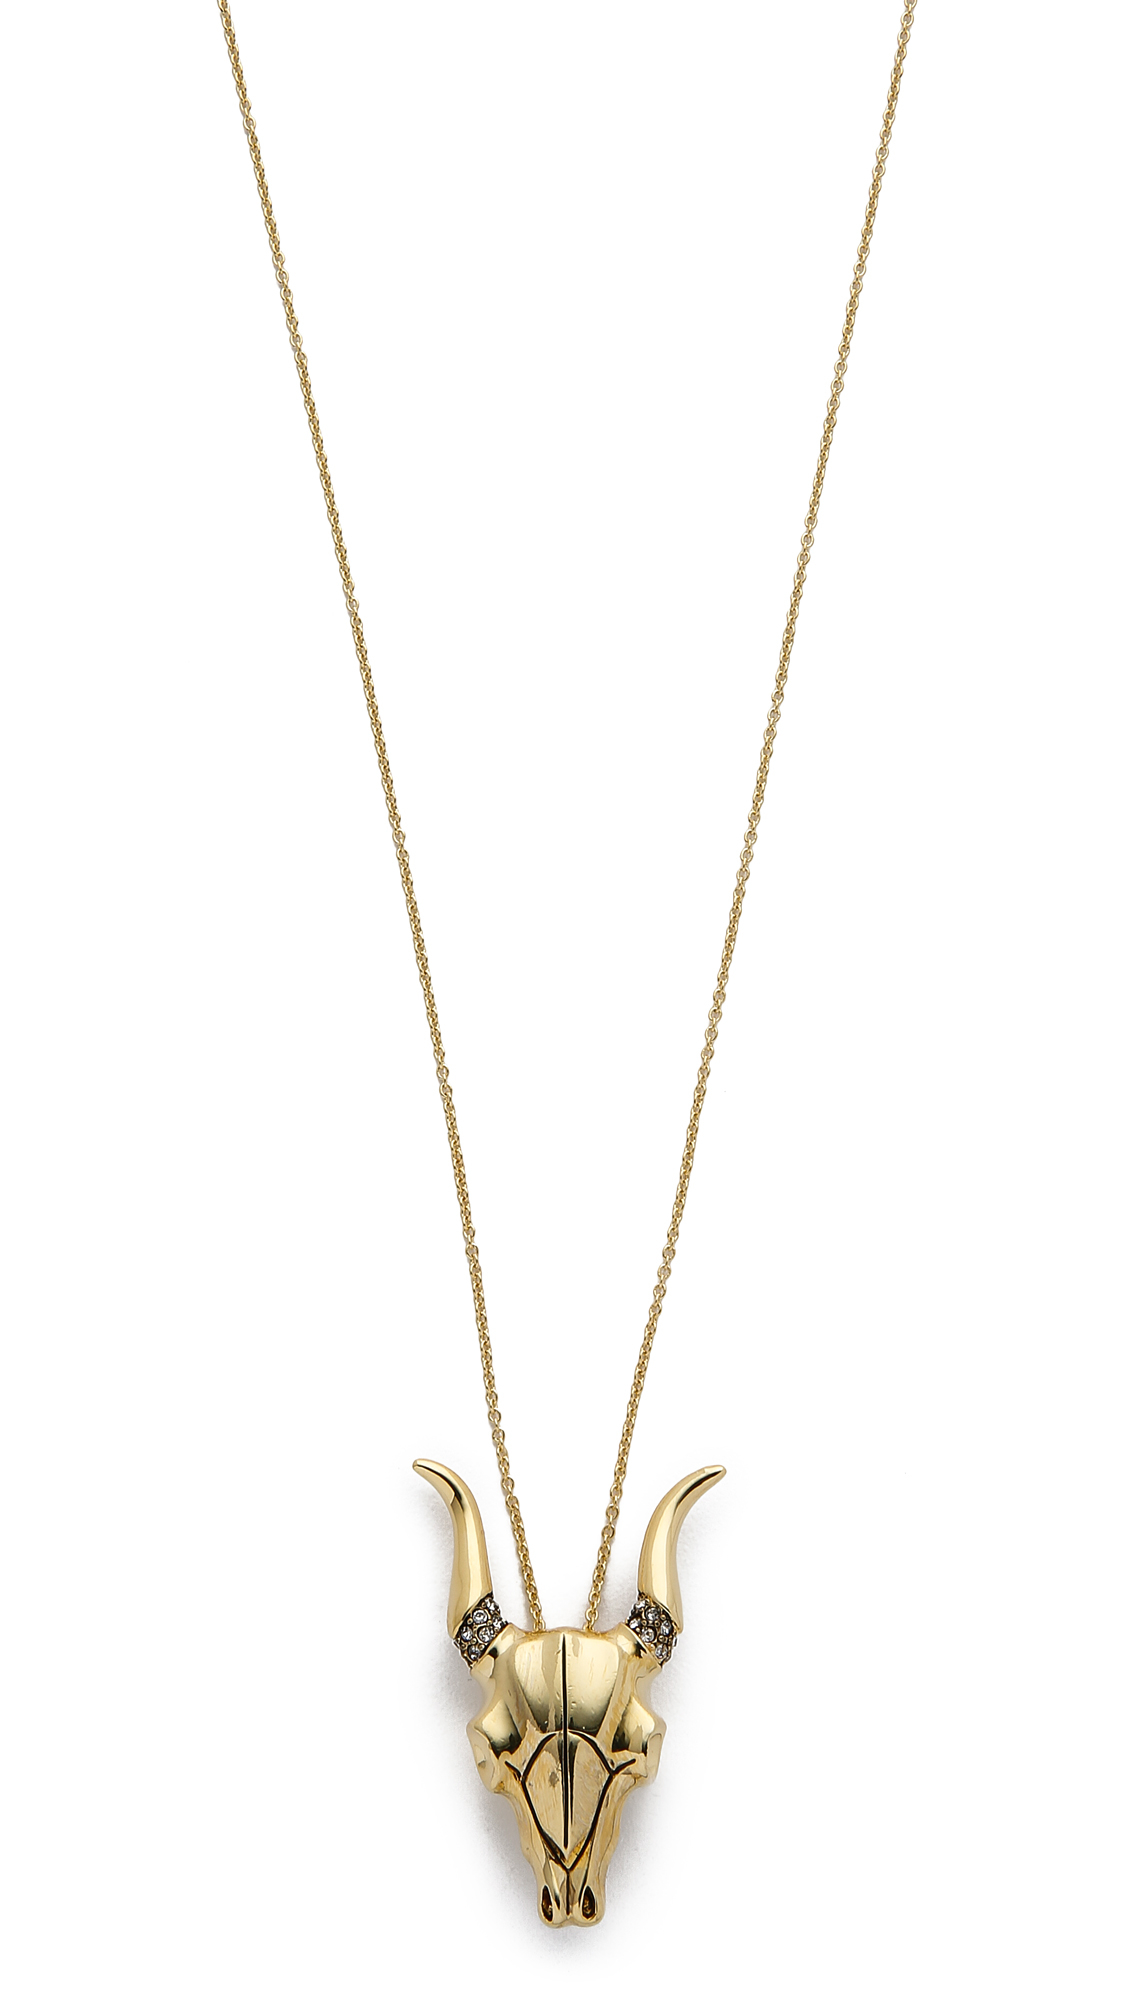 X REVOLVE Nuri Pendant Necklace in Metallic Gold House Of Harlow Hxgss